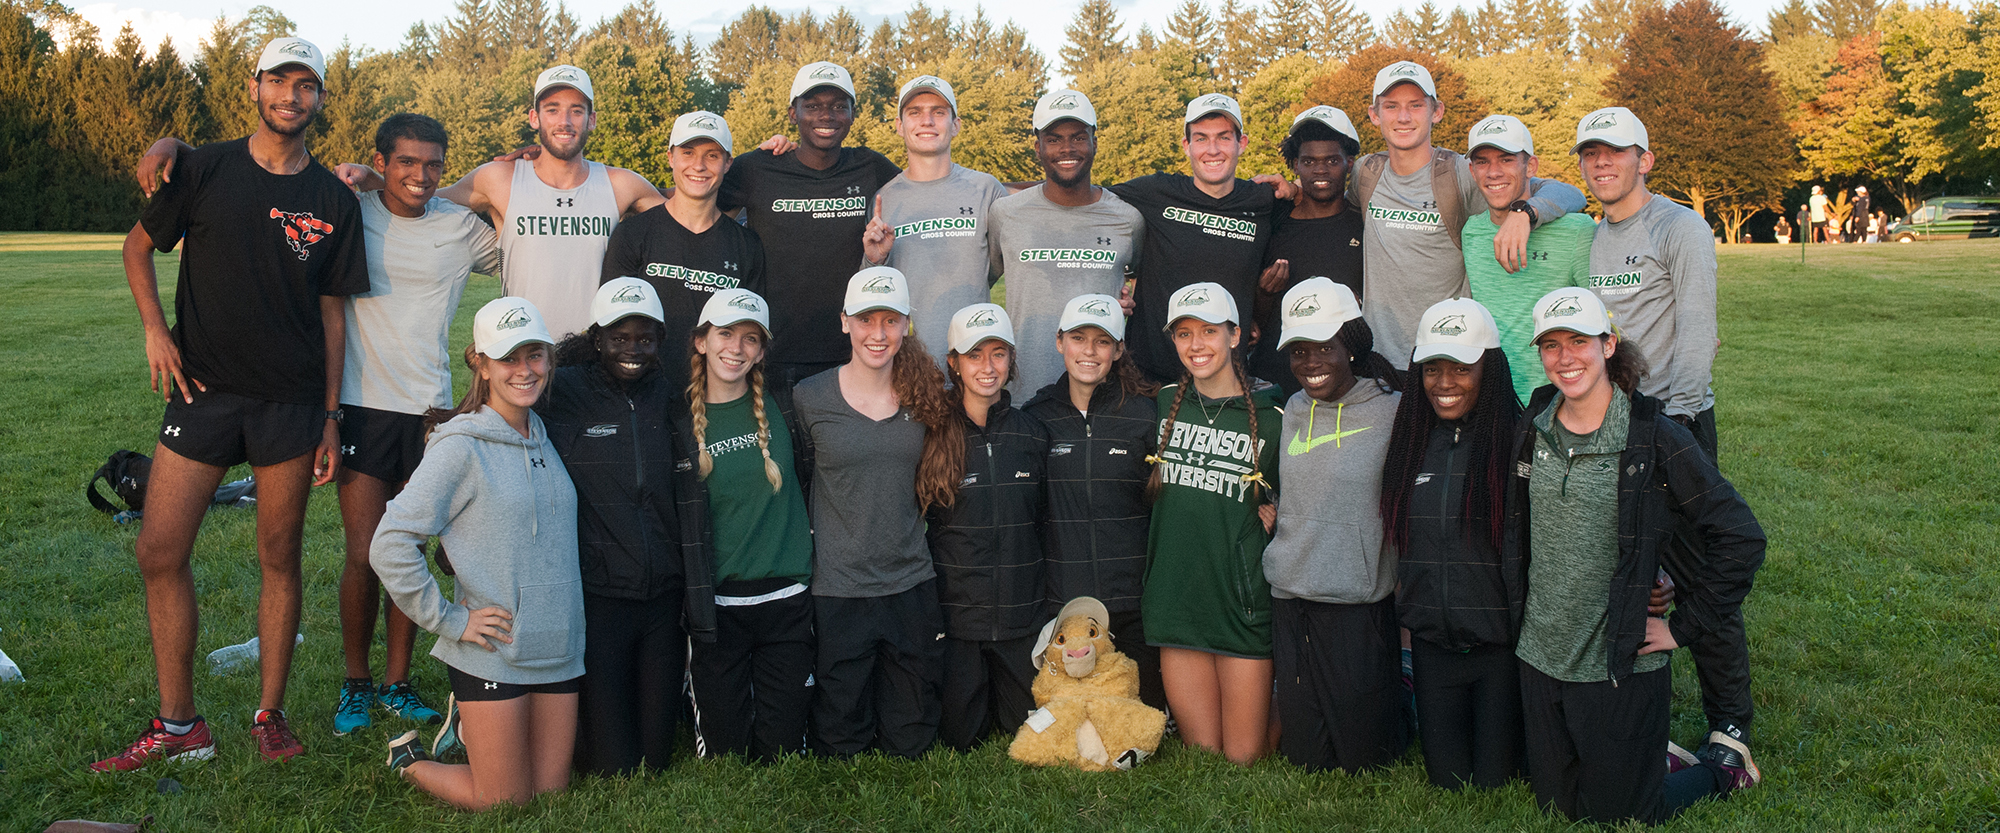 Cross Country Teams Honored for Classroom Work by USTFCCCA